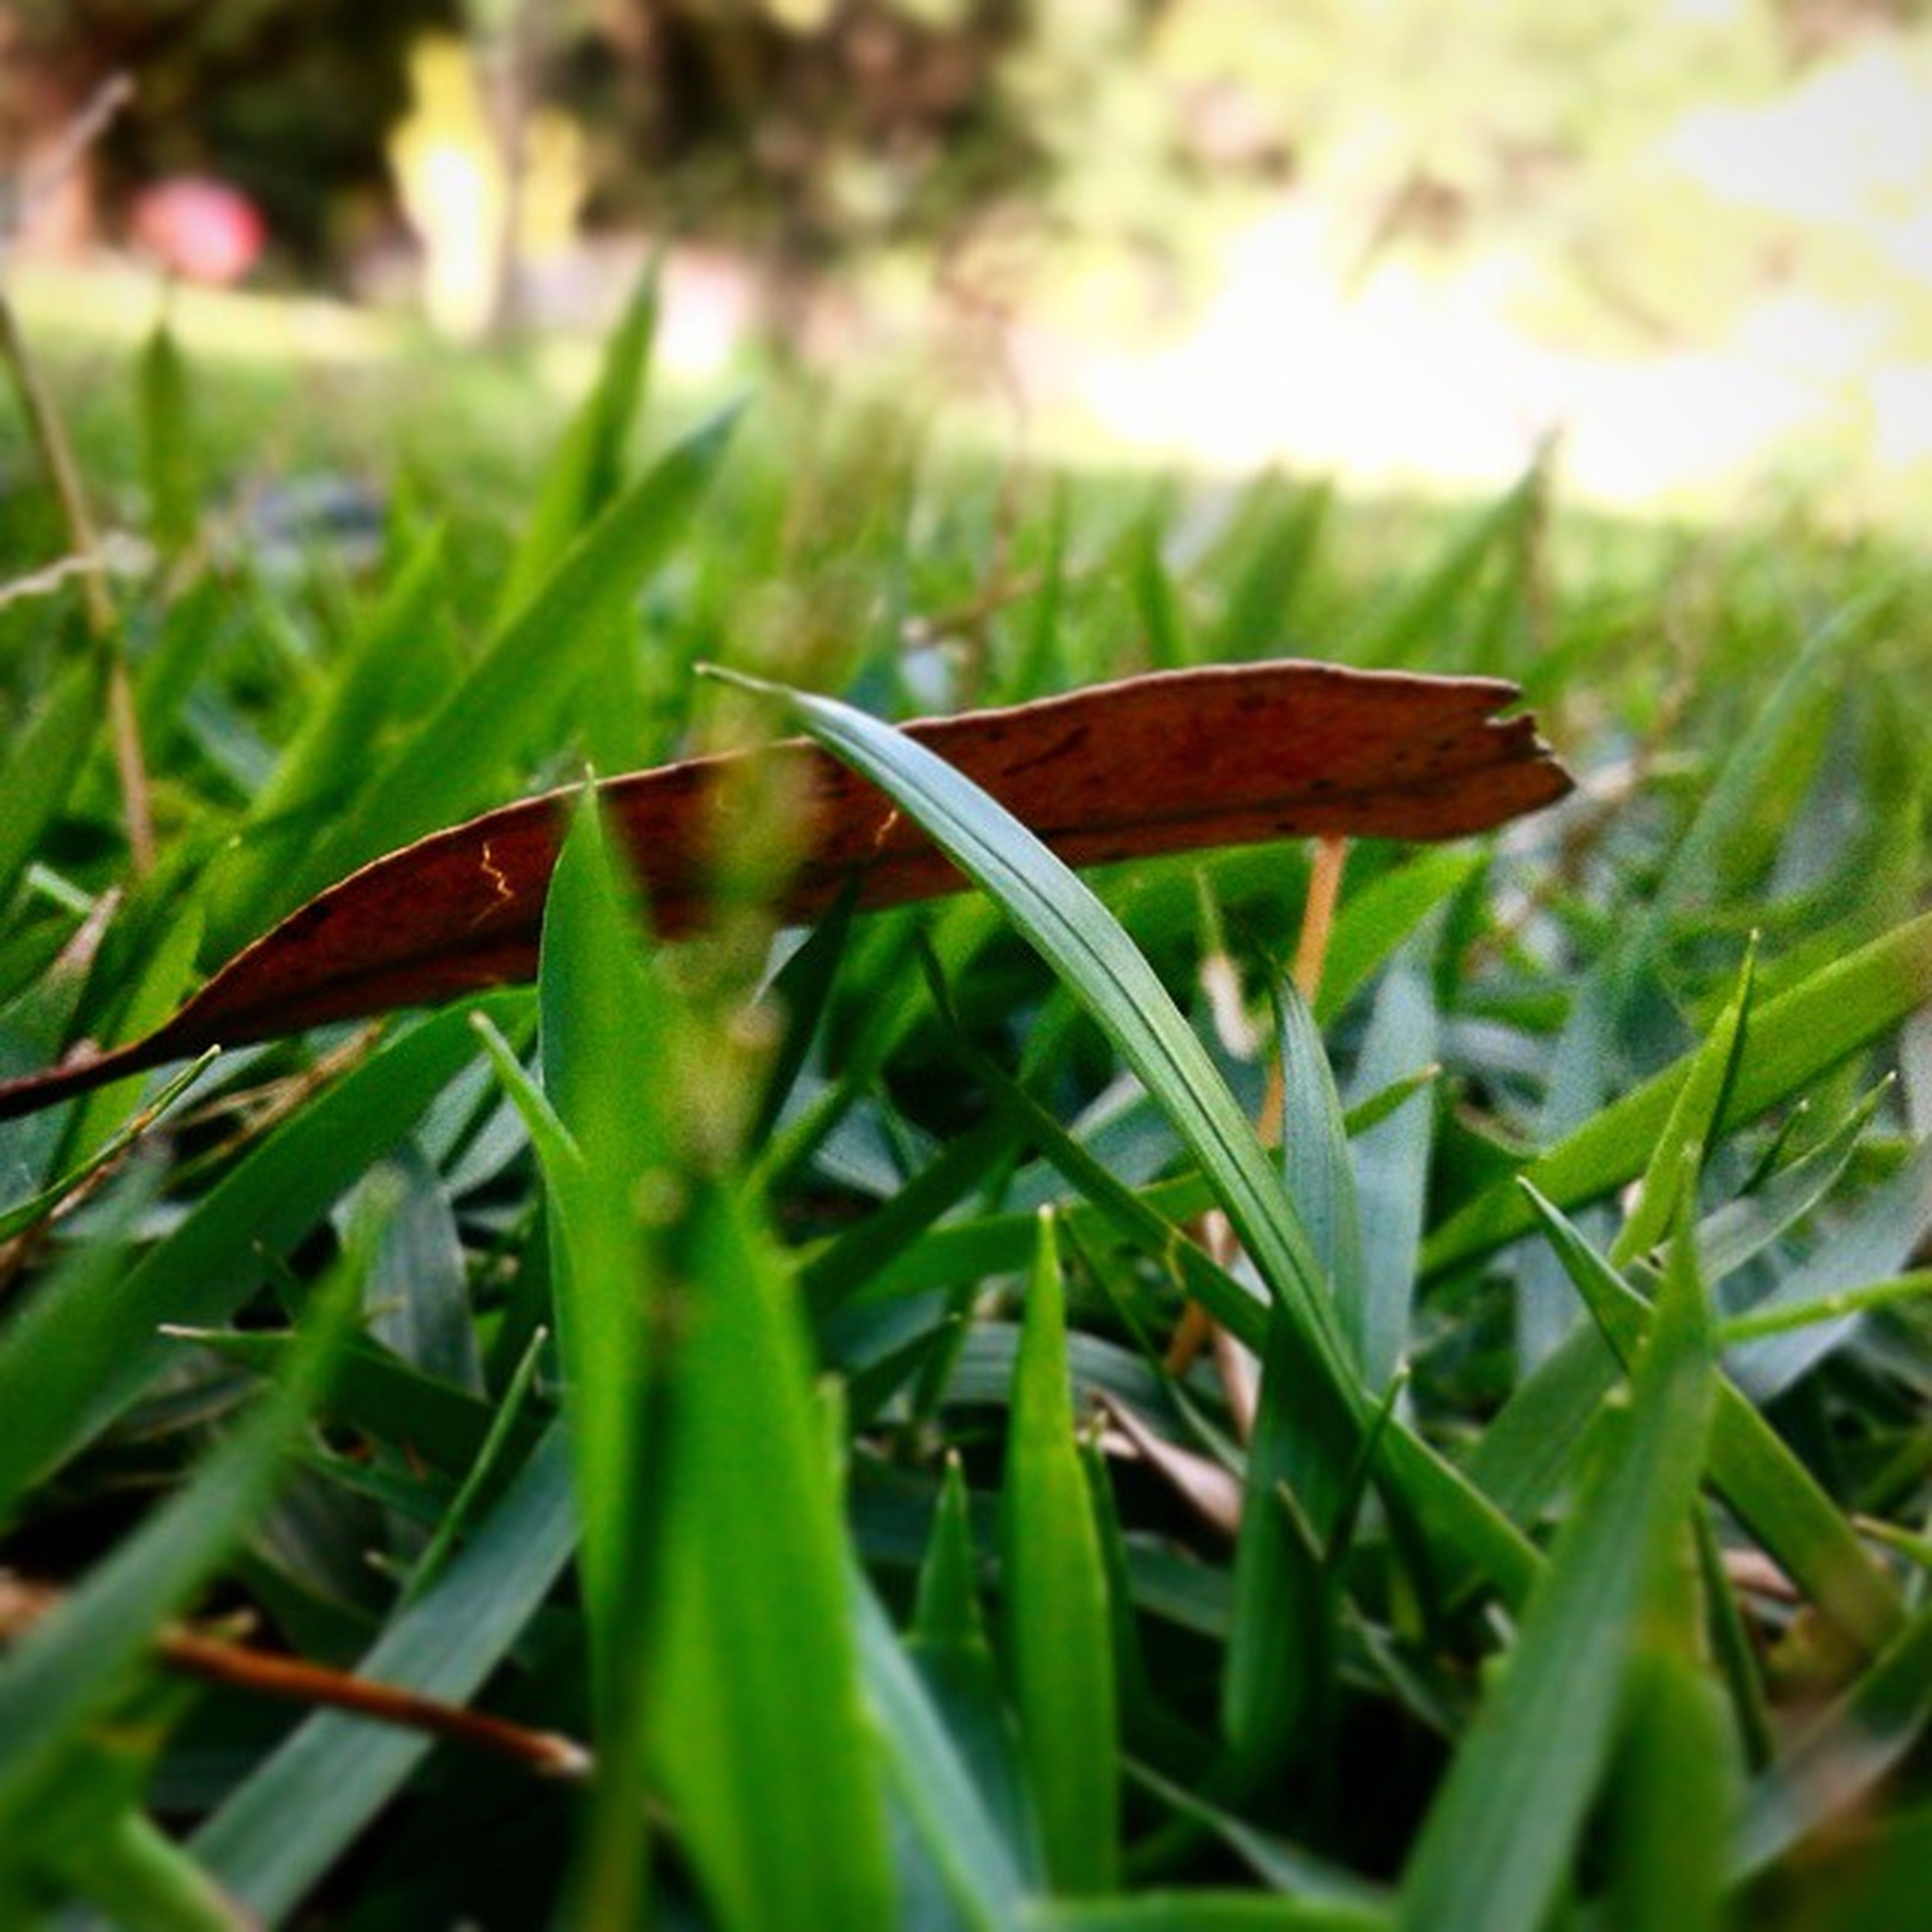 grass, growth, green color, plant, leaf, close-up, nature, field, selective focus, focus on foreground, beauty in nature, fragility, grassy, freshness, blade of grass, green, day, one animal, outdoors, insect